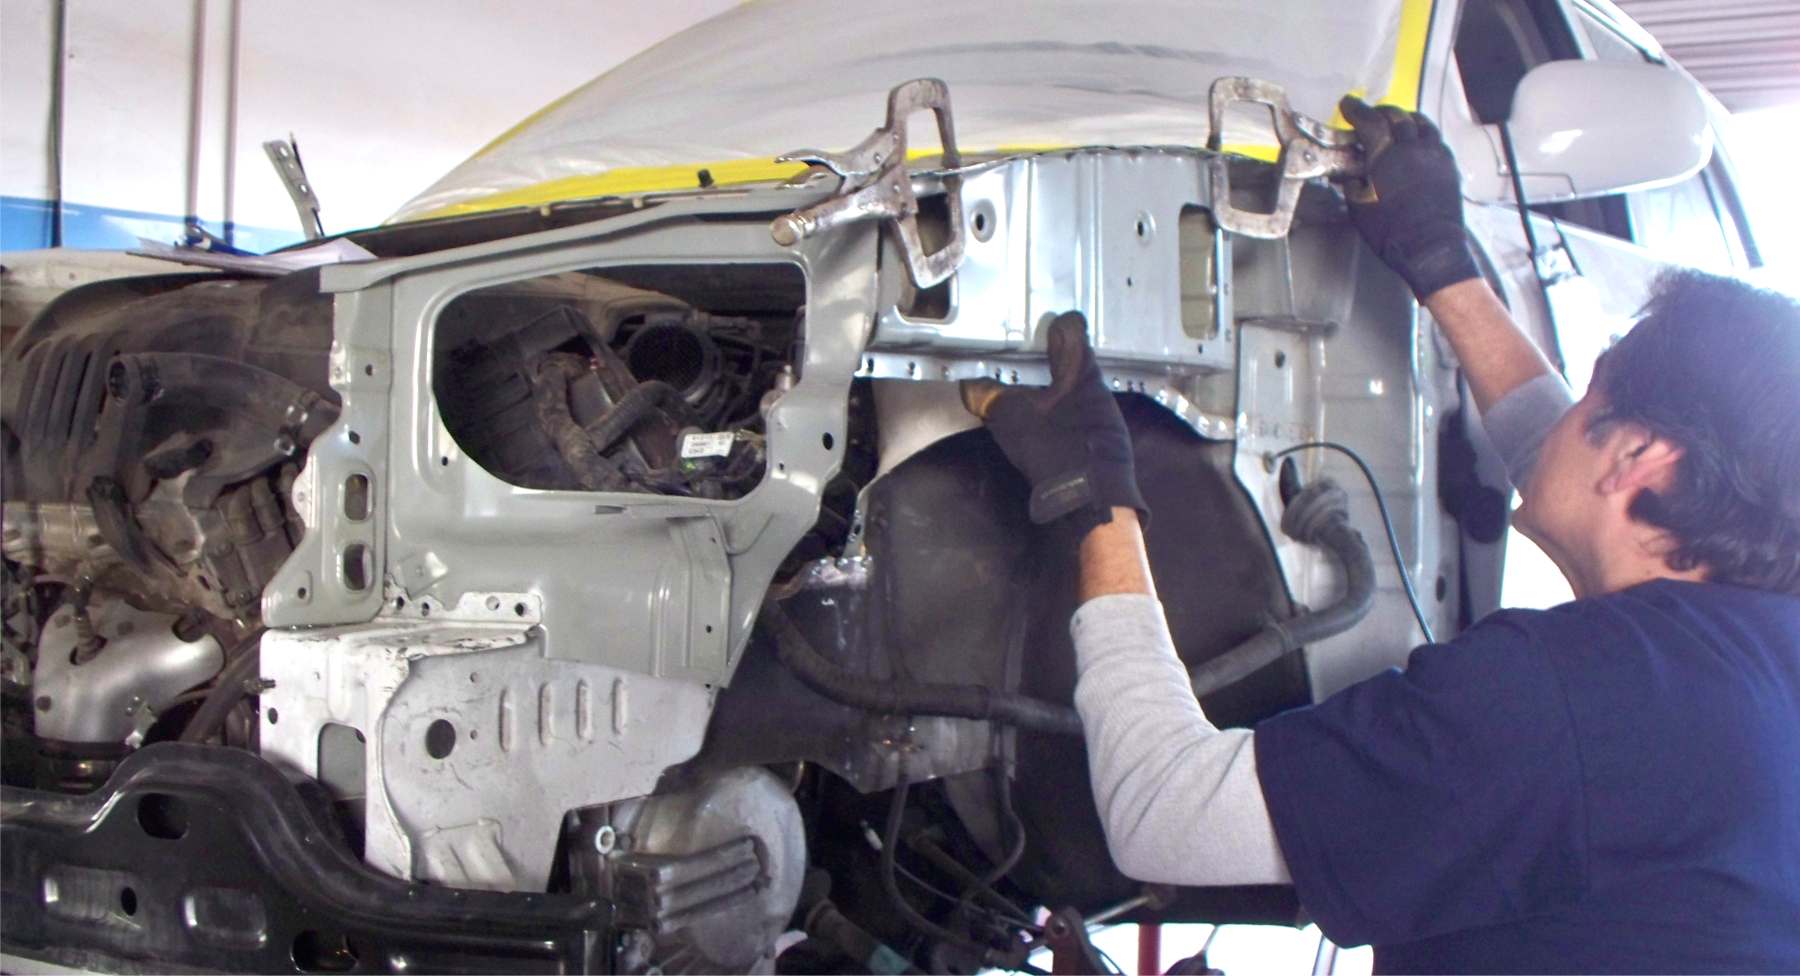 State-Of-The-Art Body Shop Body, Paint and Collision Repairs in Oxnard, Ventura, Thousand Oaks counties in California